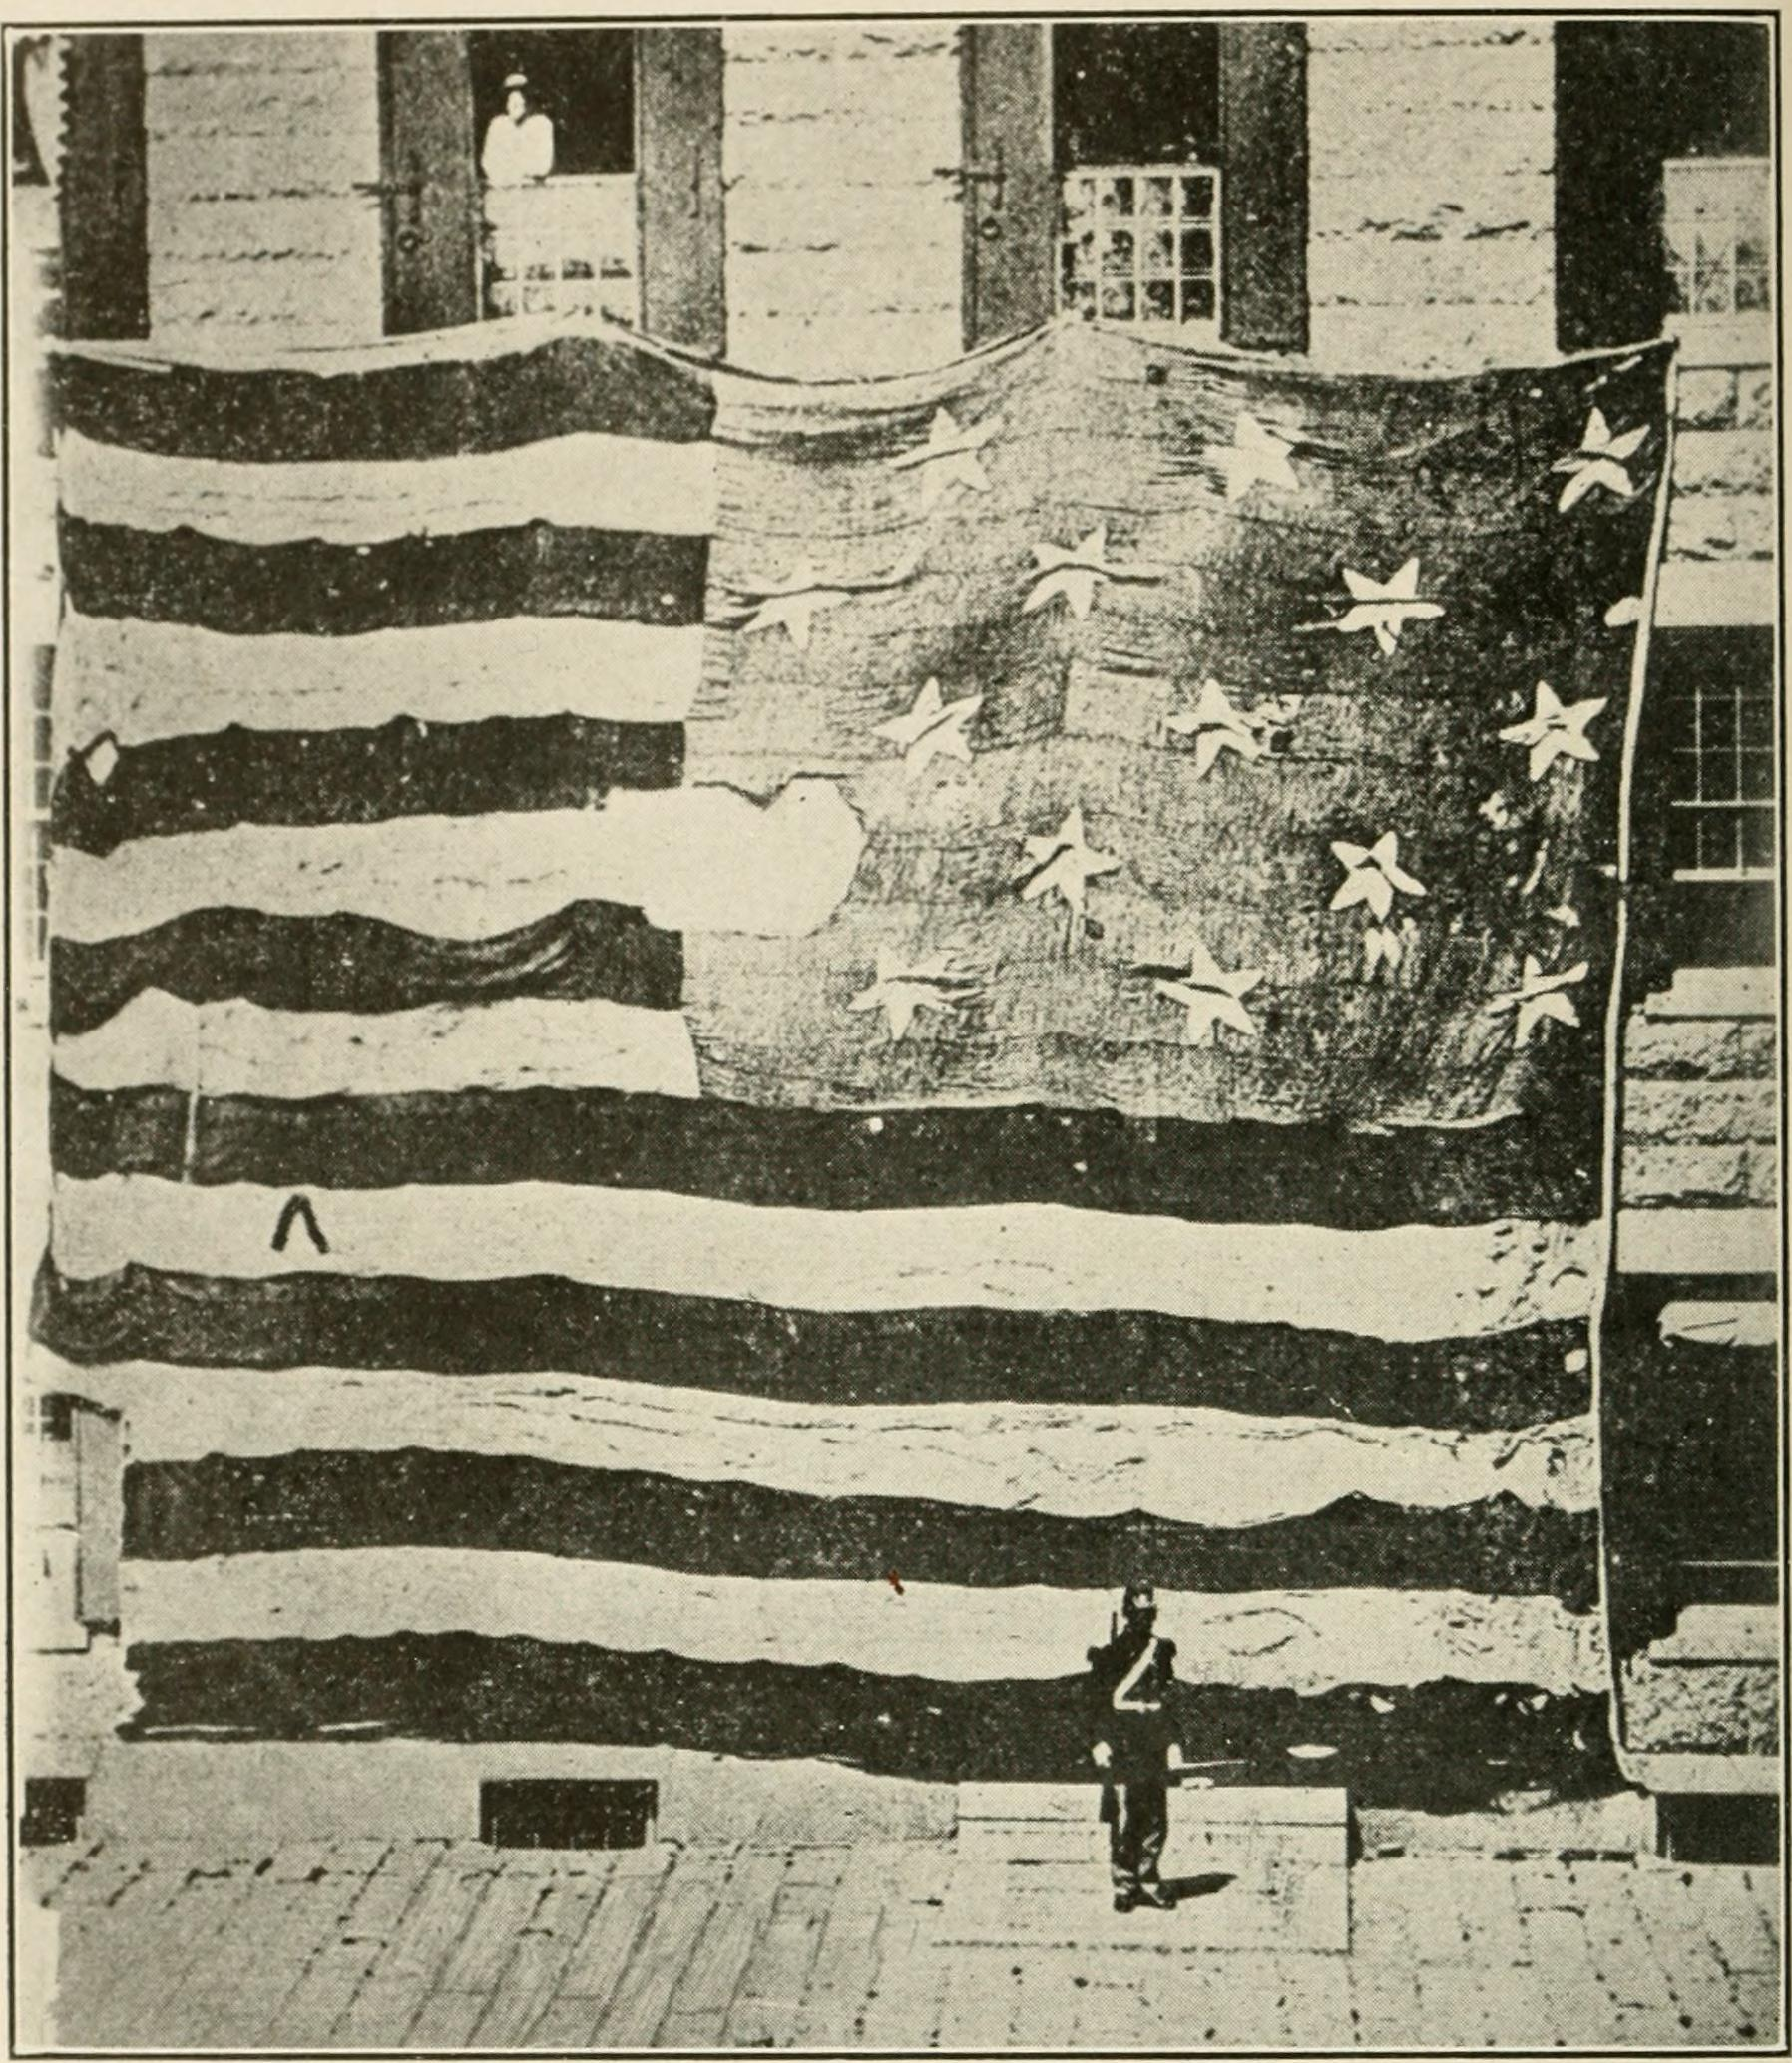 5 Myths About The Star Spangled Banner